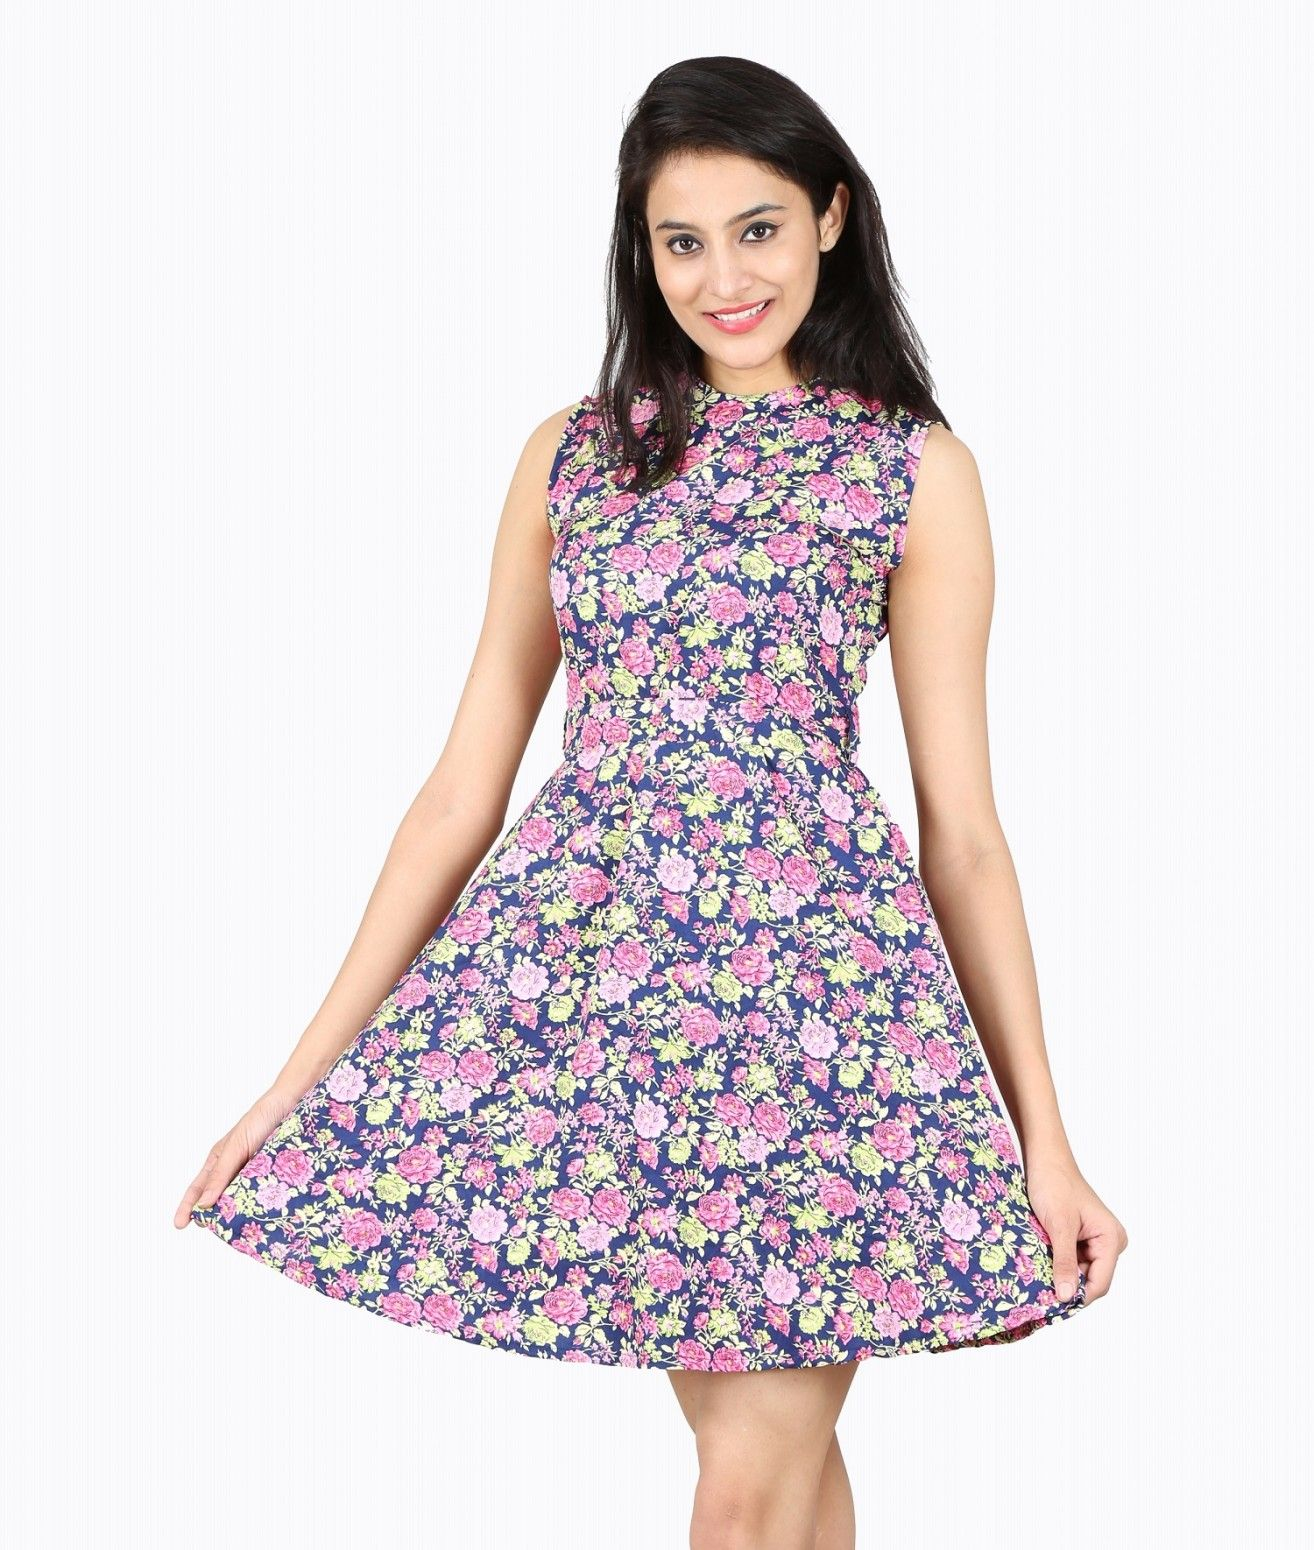 fe85436da5a Buy Nishtag Multicolor Floral Printed Sleeveless Knee Length Dress Online  at Low prices in India on